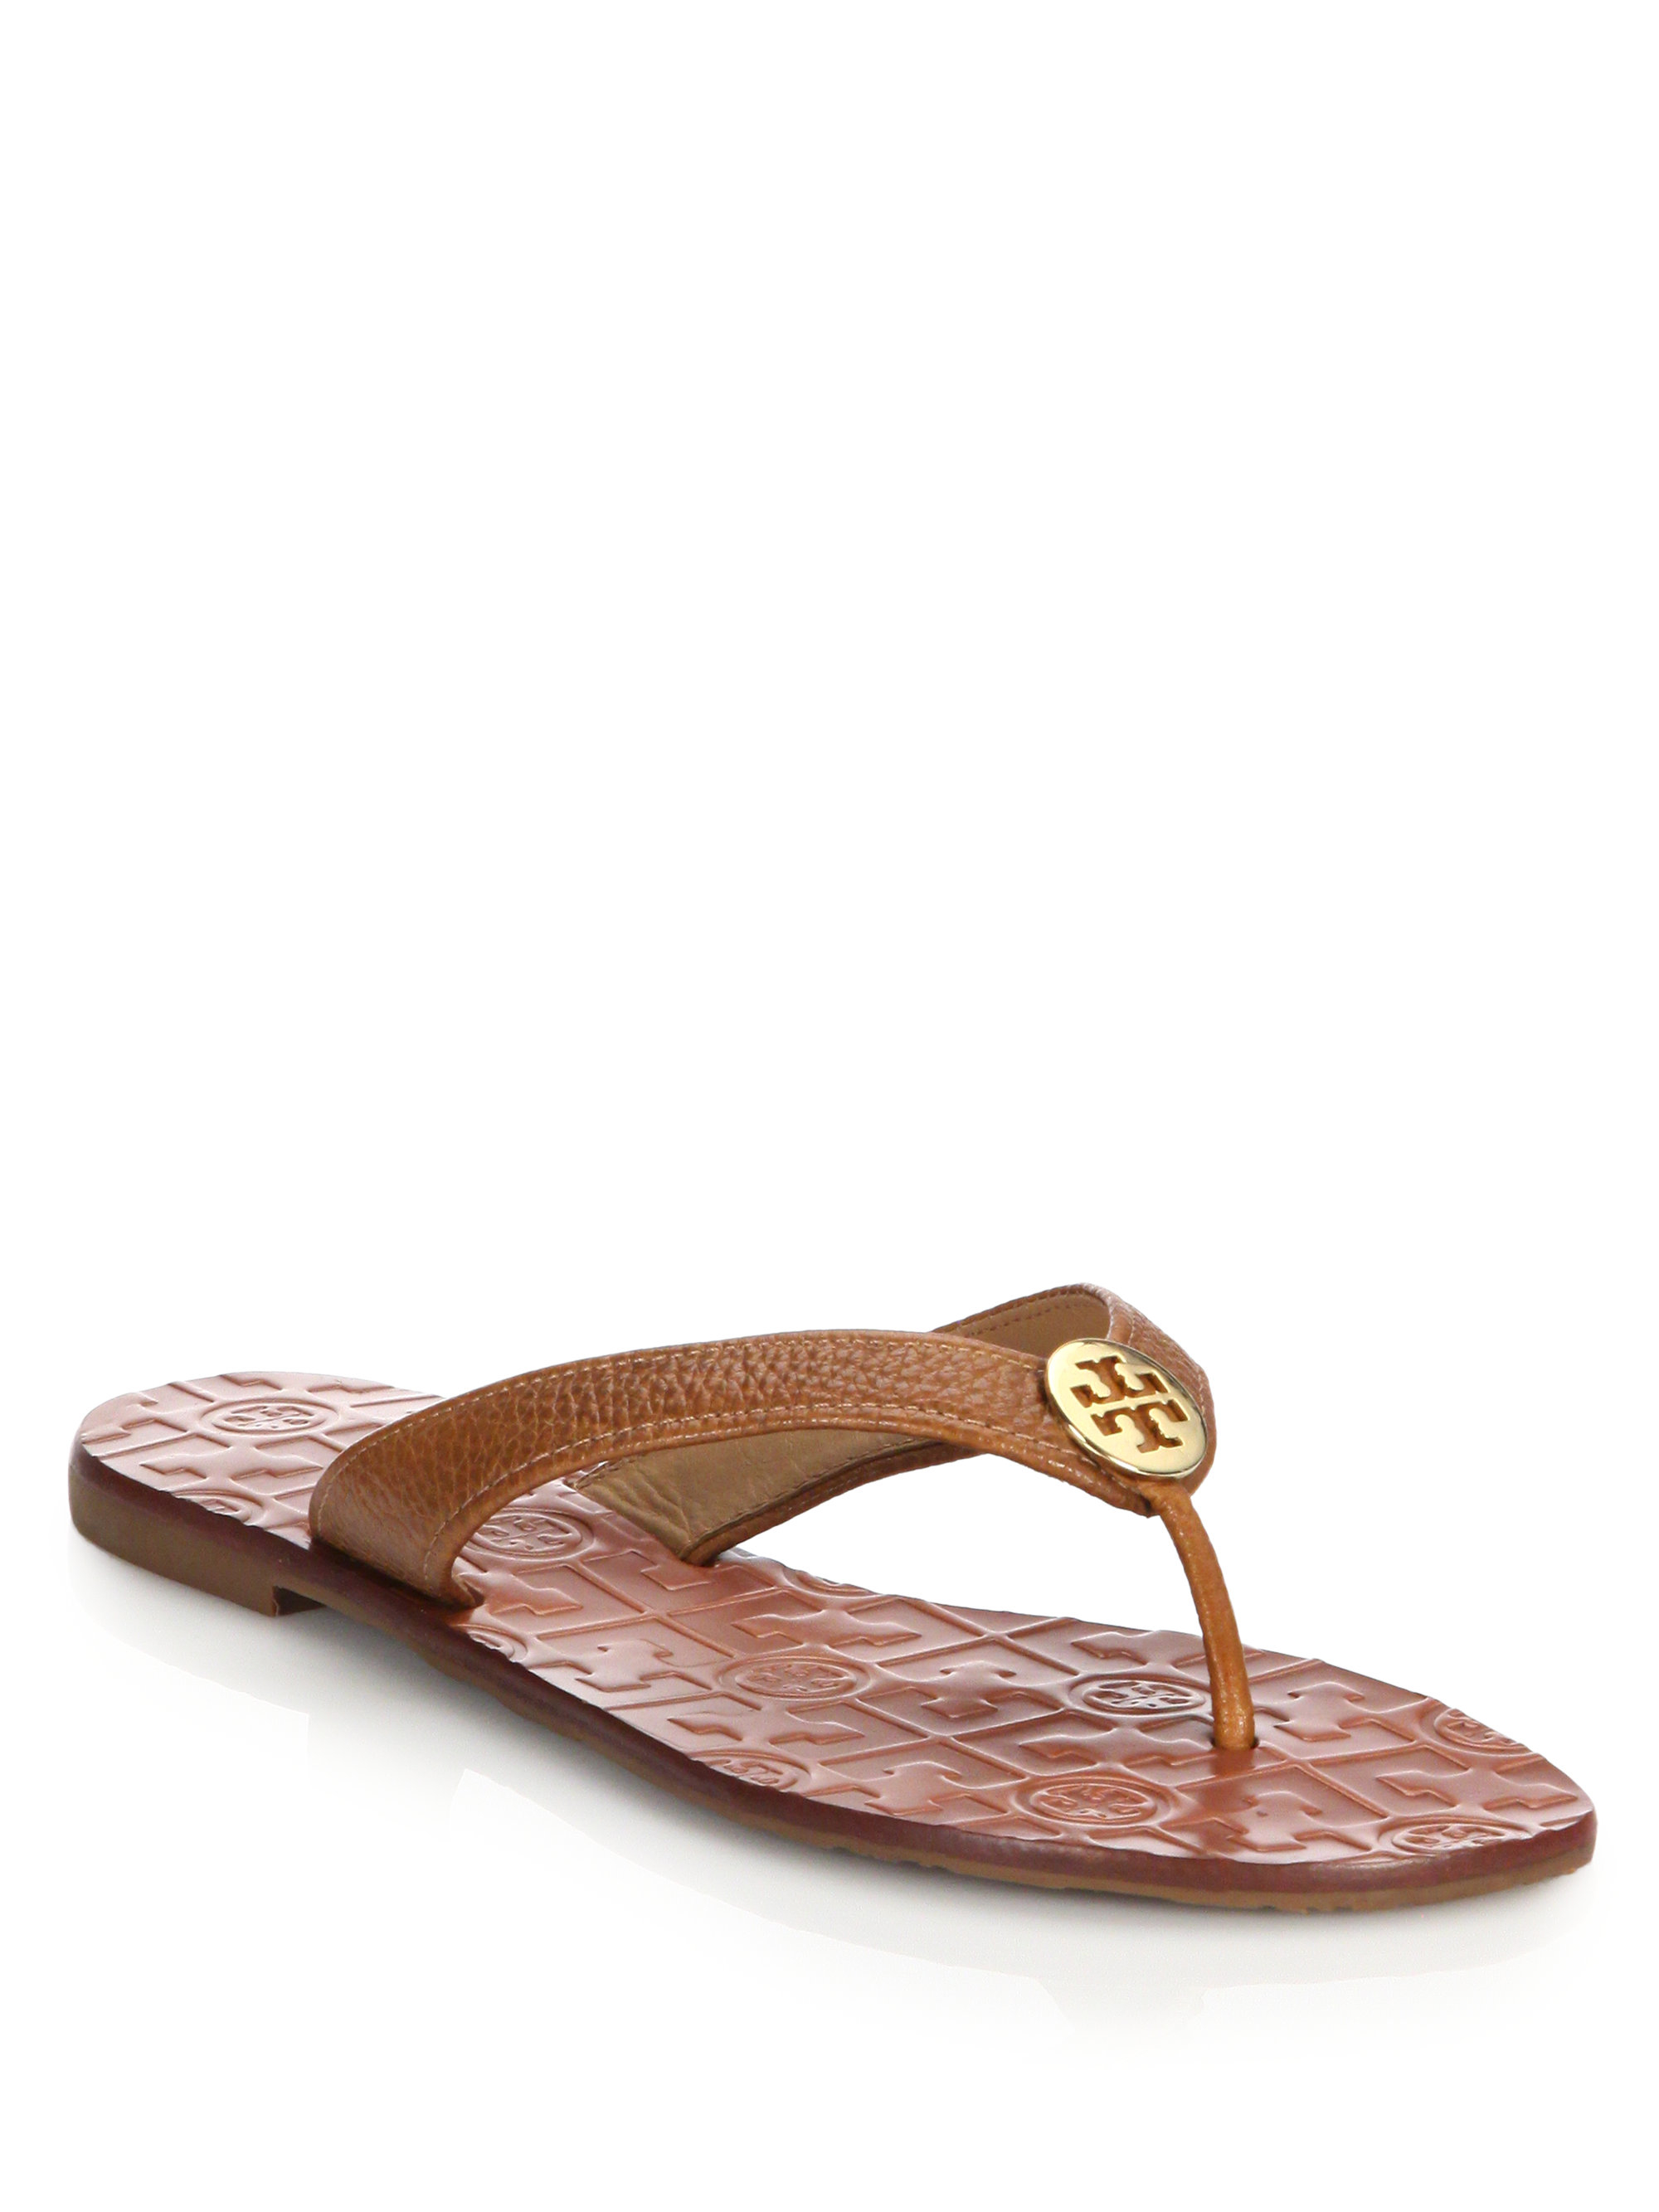 tory burch thora tumbled leather thong sandals in brown lyst. Black Bedroom Furniture Sets. Home Design Ideas